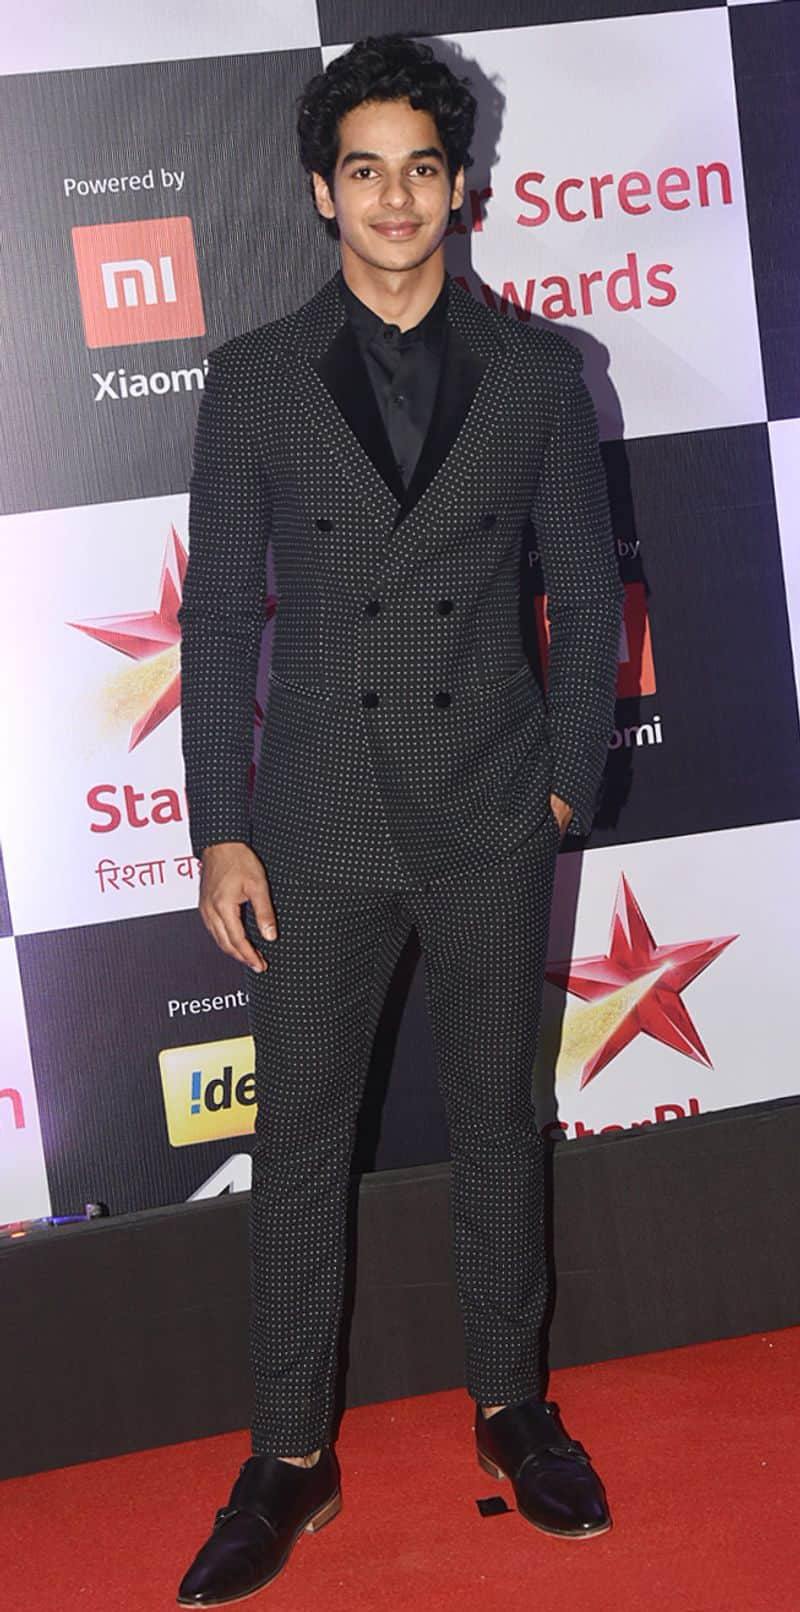 Print on print, Ishaan Khatter, knows how to work this trend.